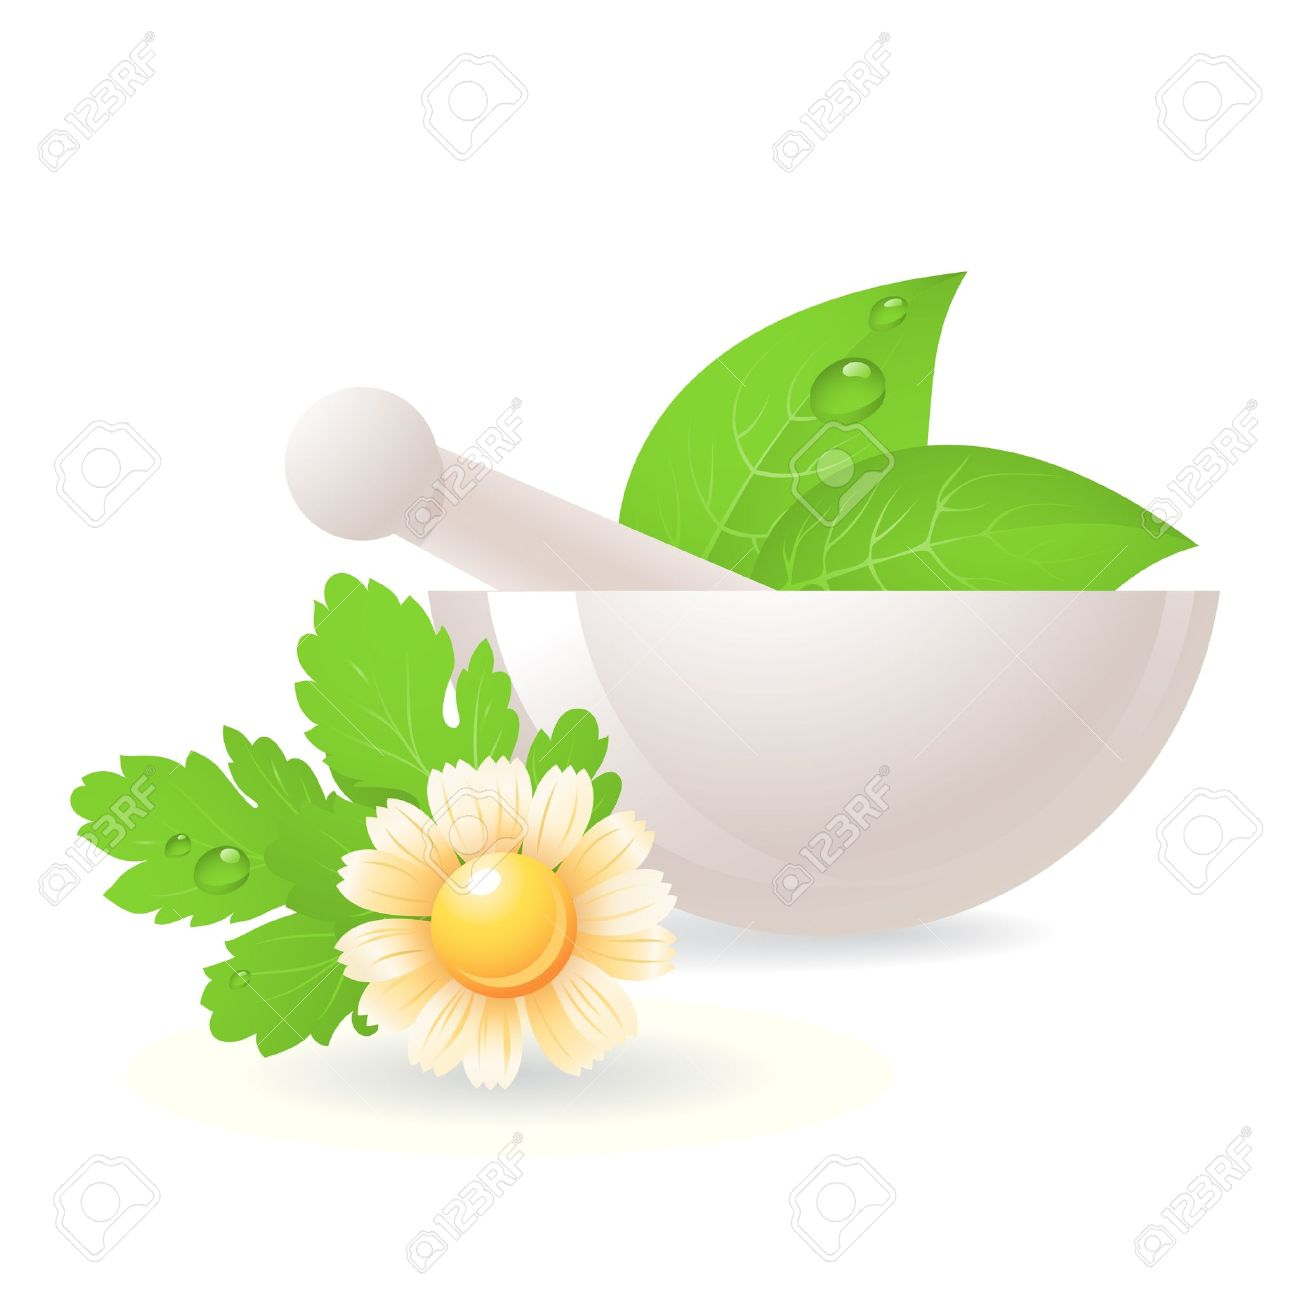 Mortar with herbs and camomile,alternative medicine. - 9842892